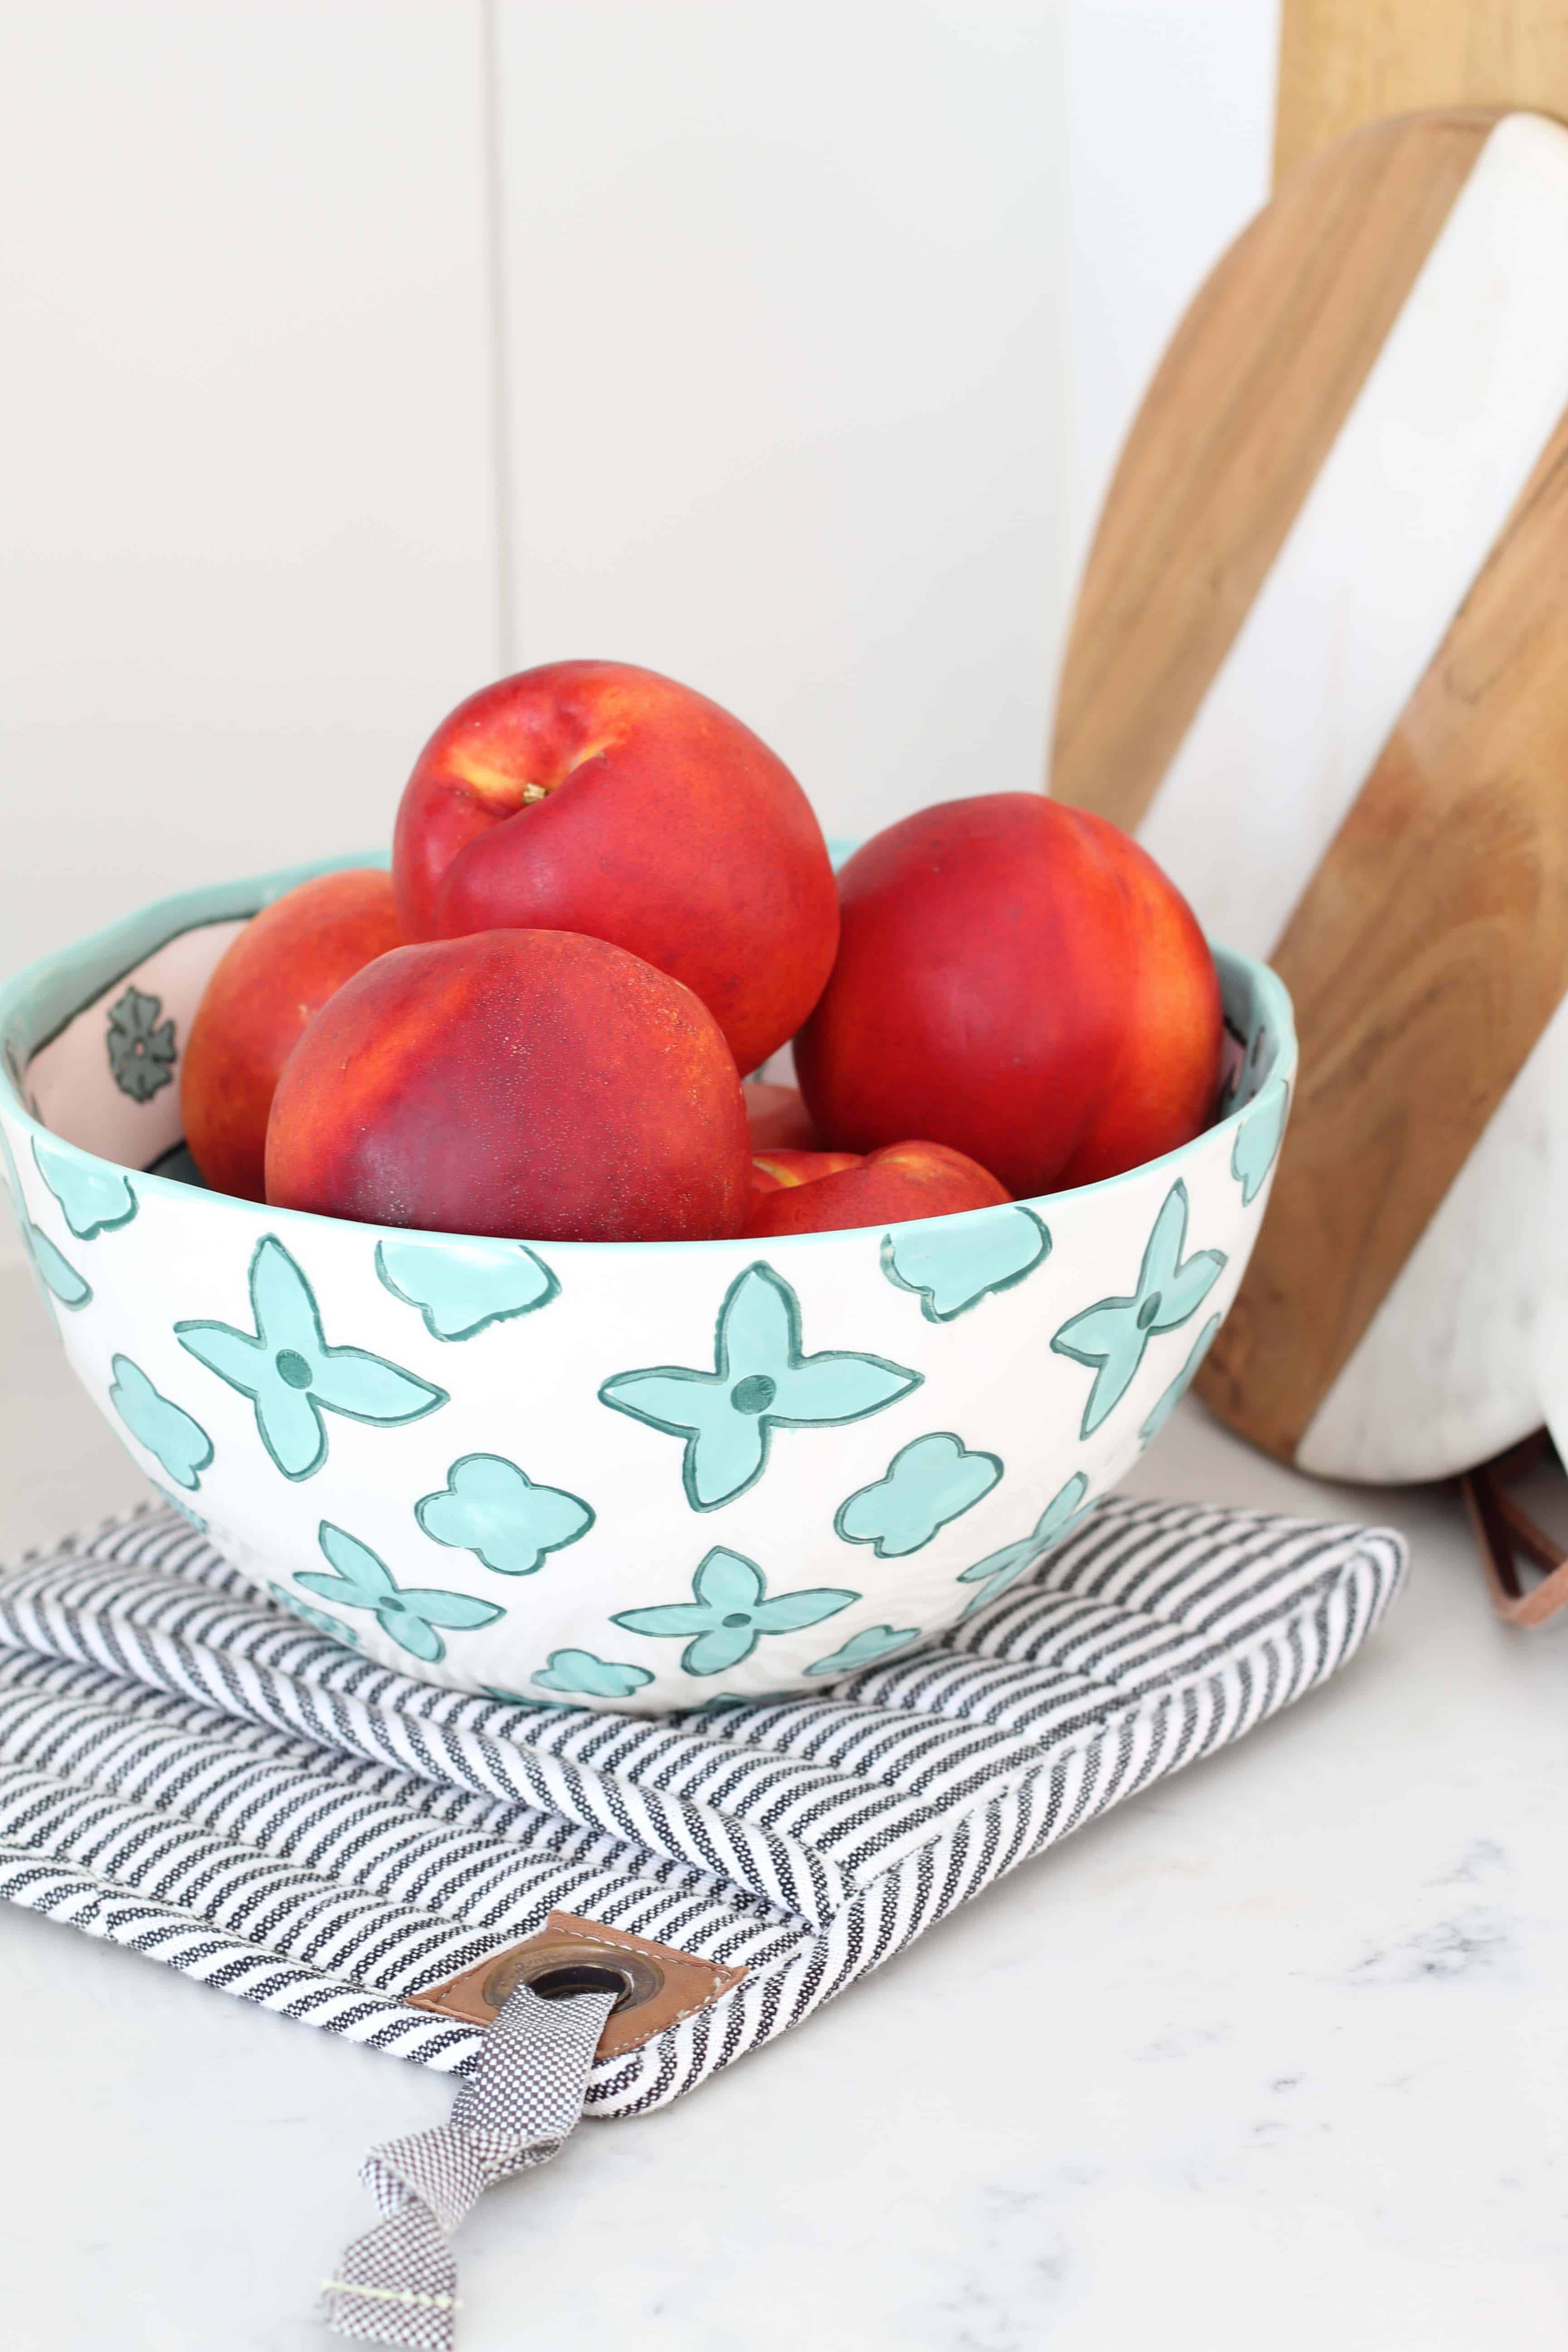 nectarines in fruit bowl from anthropologie